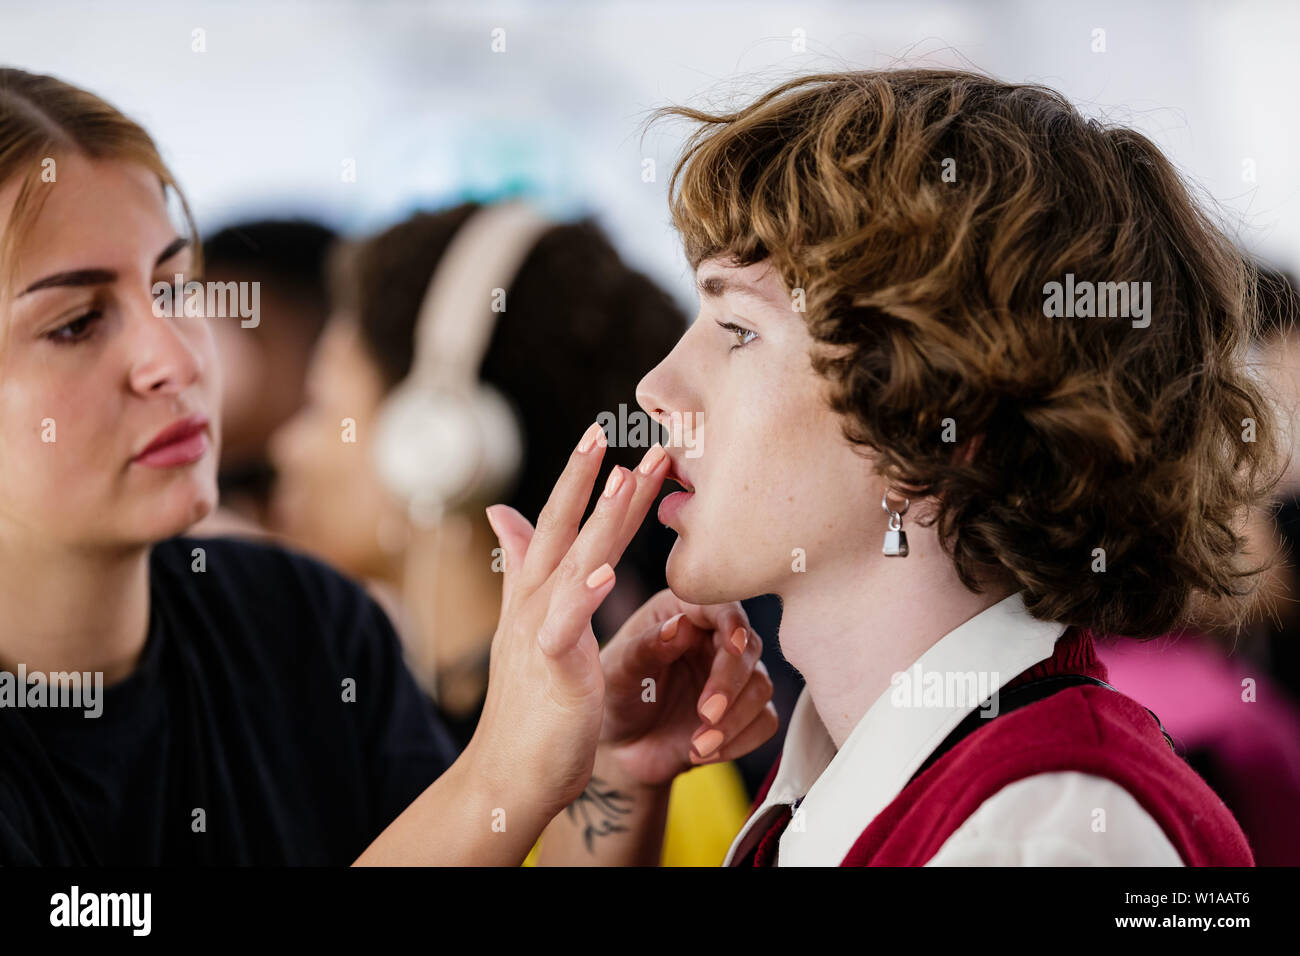 Berlin, Germany  1st July, 2019  A model prepares at the